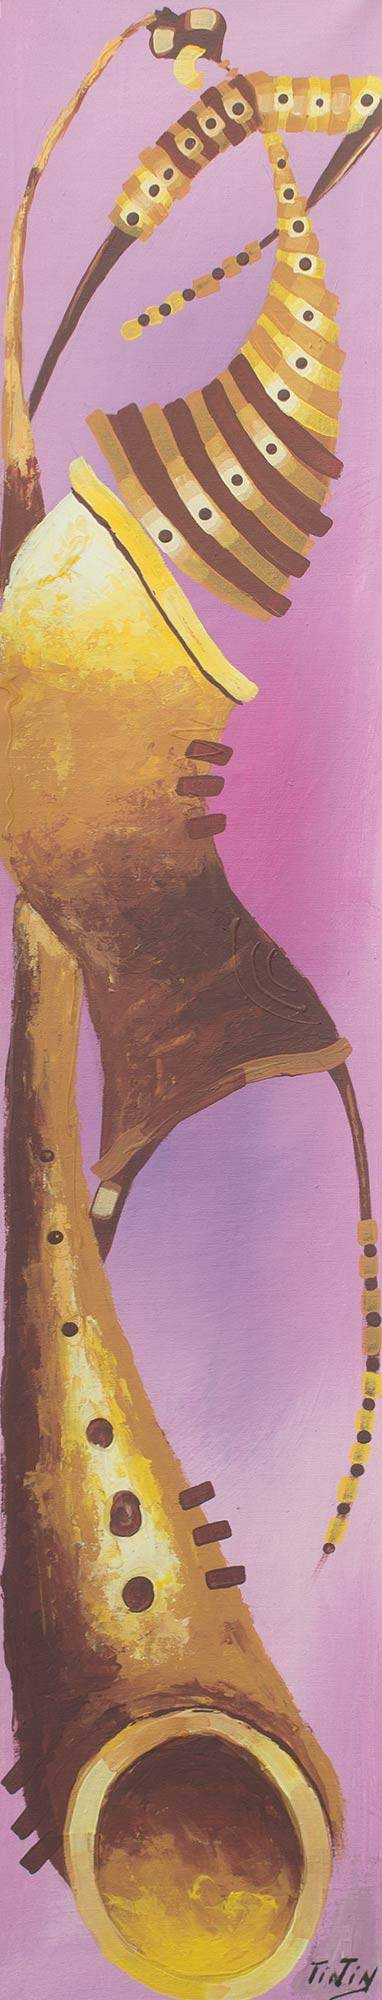 'Brown Ochre I' - Woman and Sax Original Painting in Purple and Brown